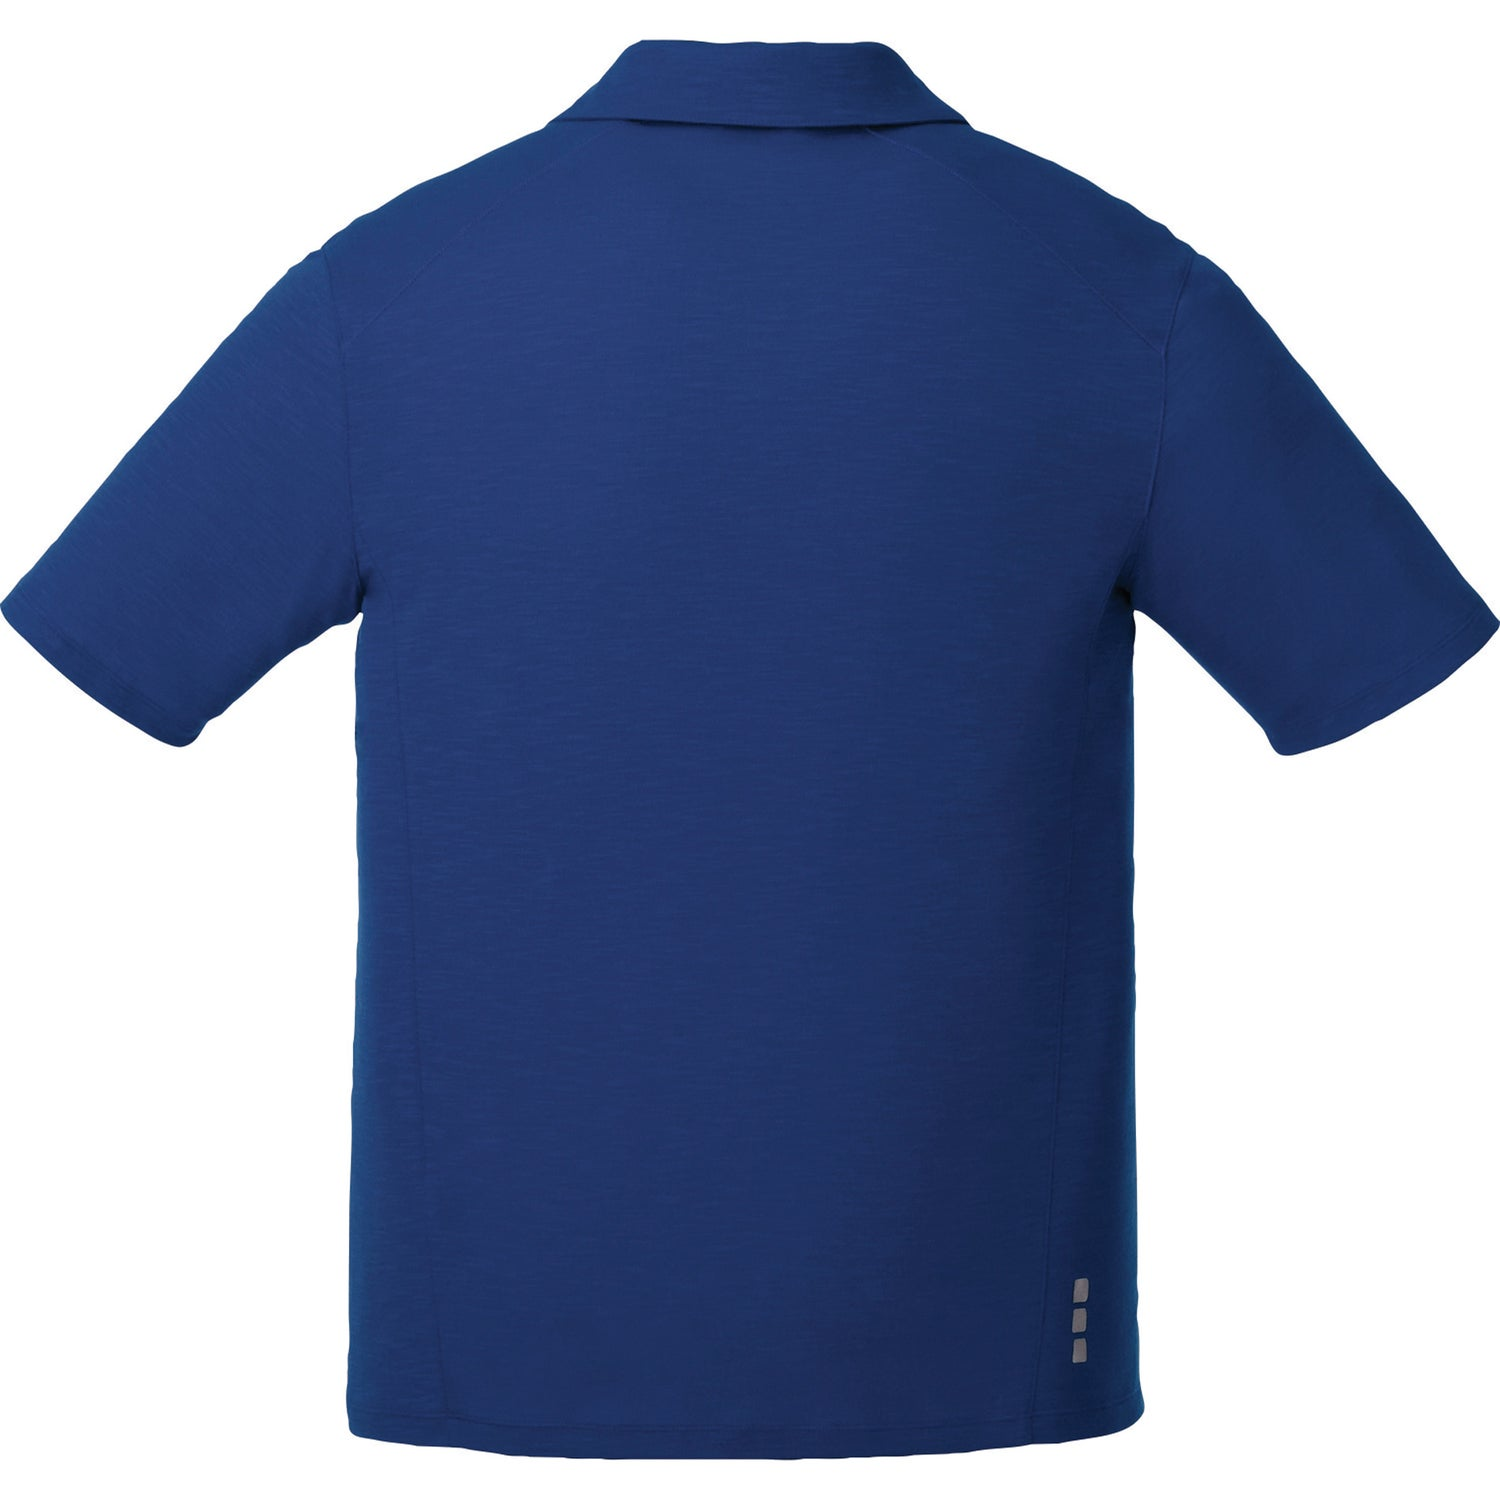 Jepson short sleeve polo shirt by trimark men 39 s for Quality polo shirts with company logo